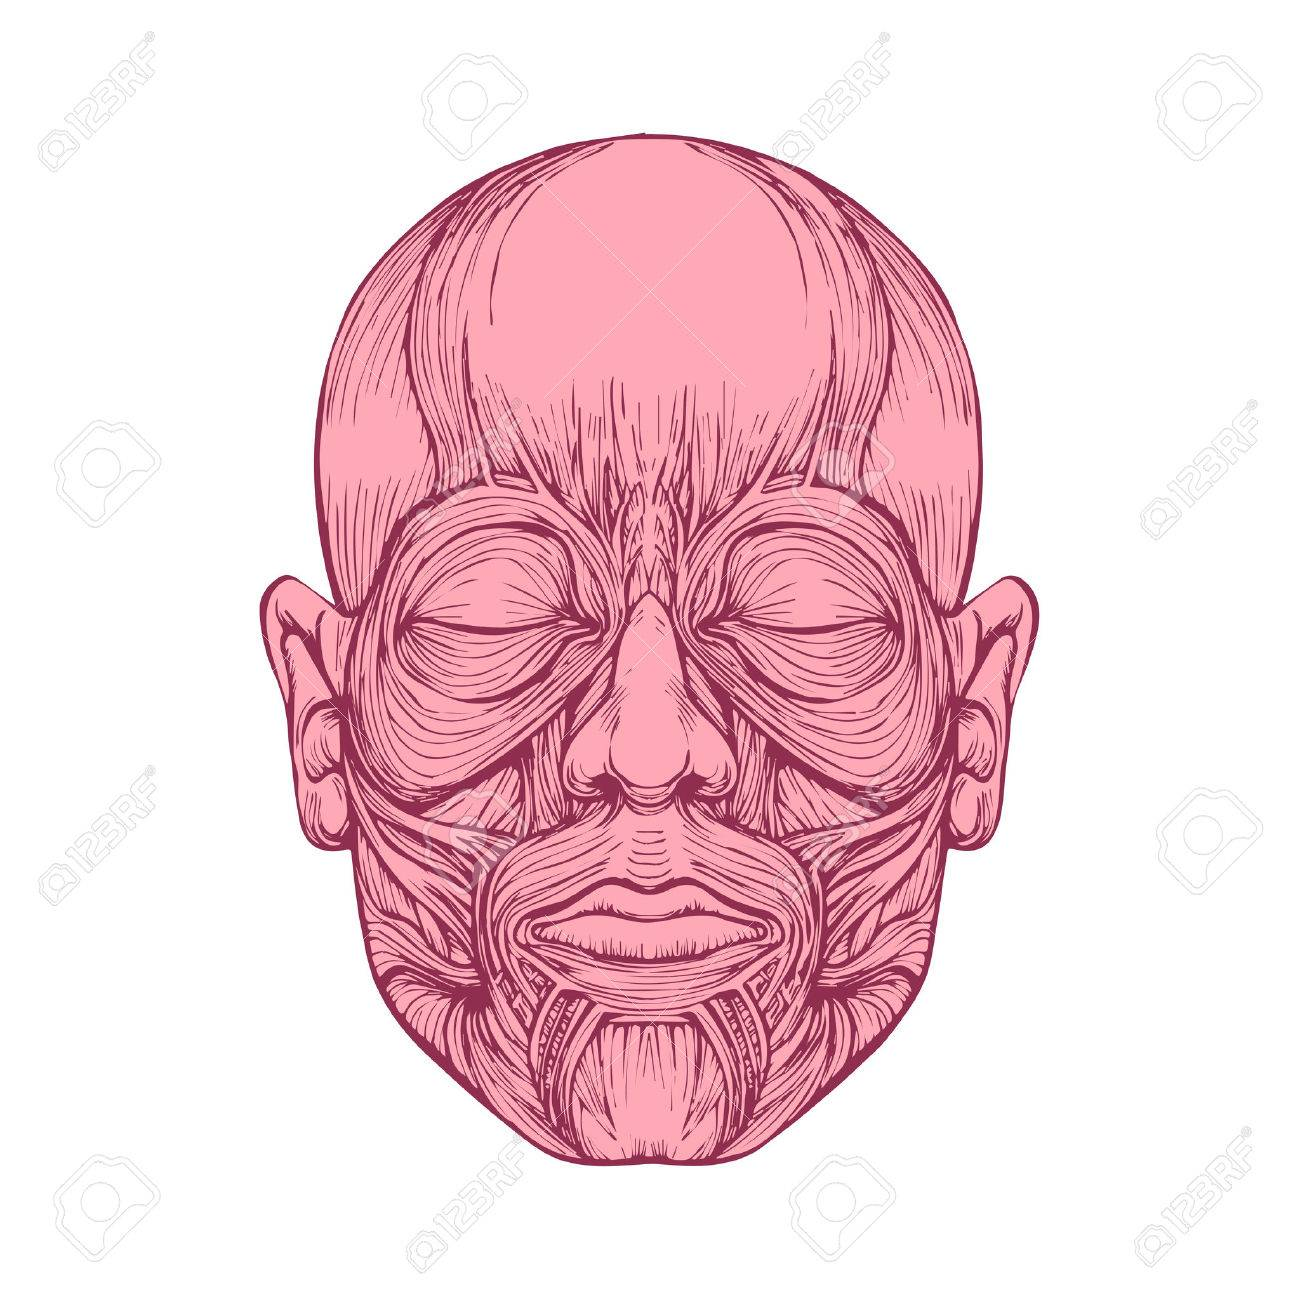 Muscle Of Faces Human Head Anatomy Medical Illustration Royalty